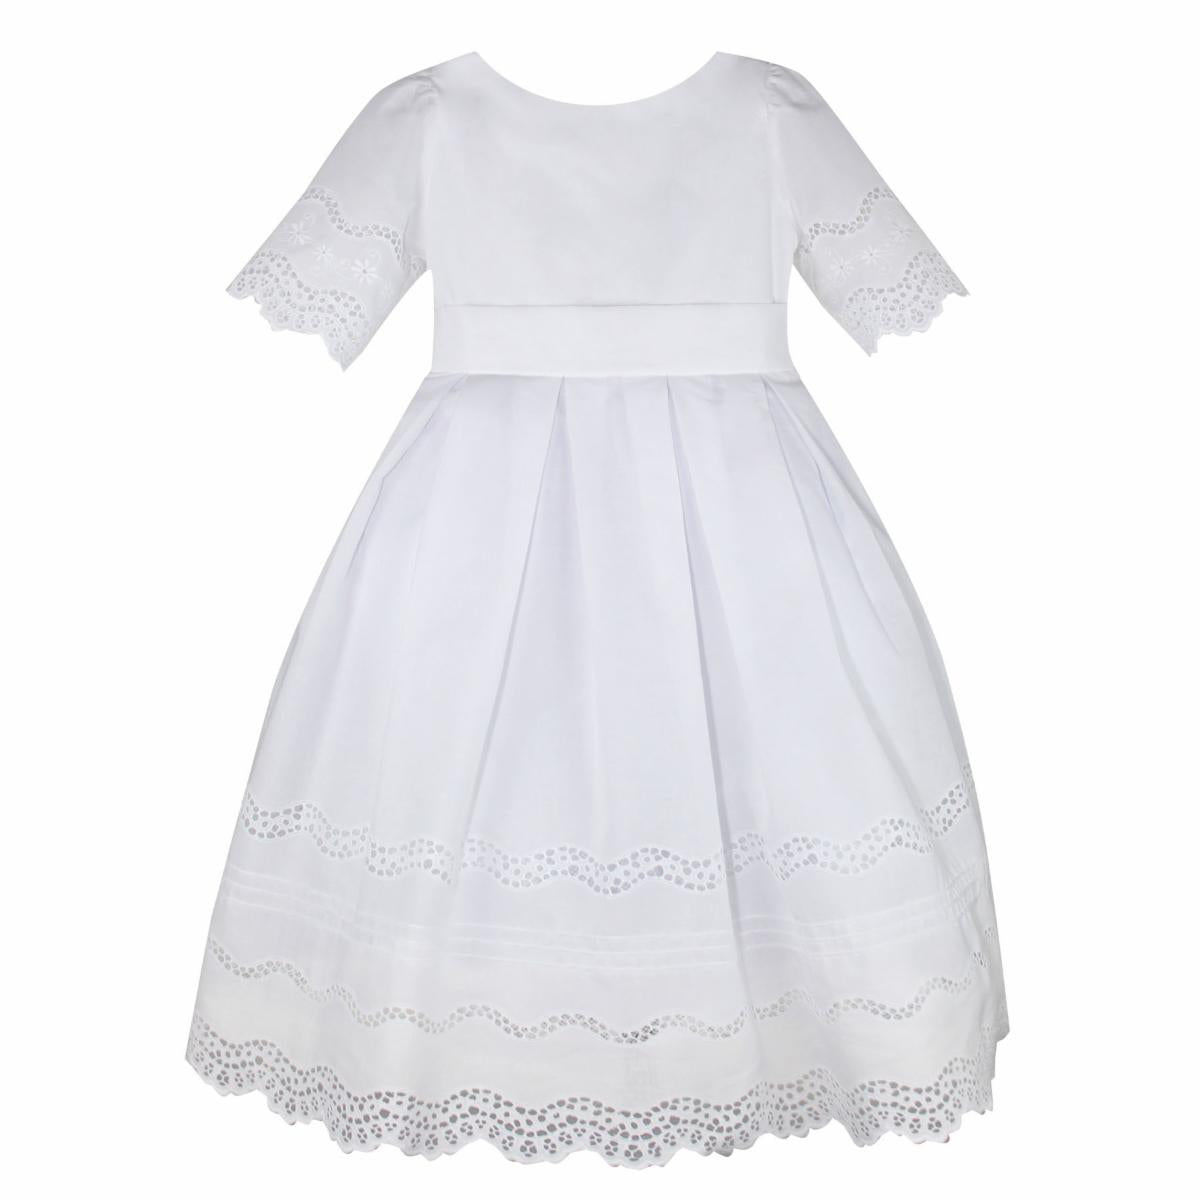 BEAUTIFUL COTTON EMBROIDERED LACE DRESS